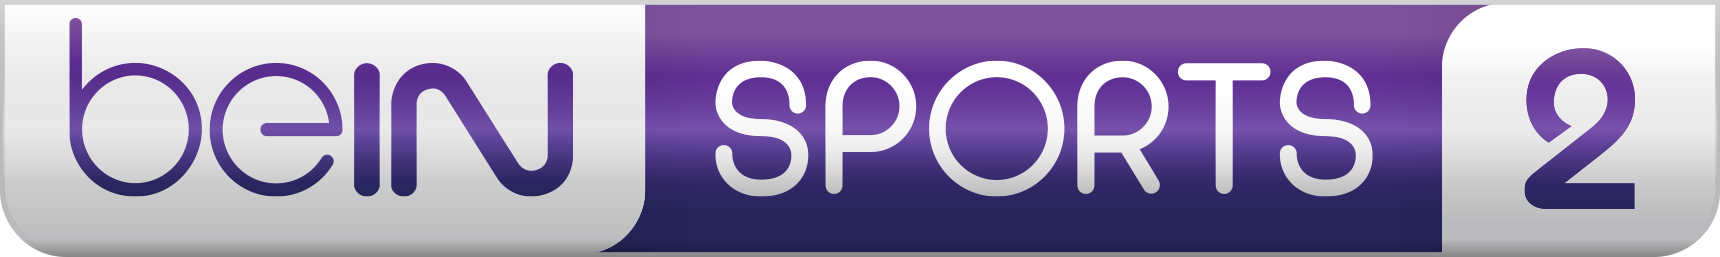 Image result for bein sports 2.png